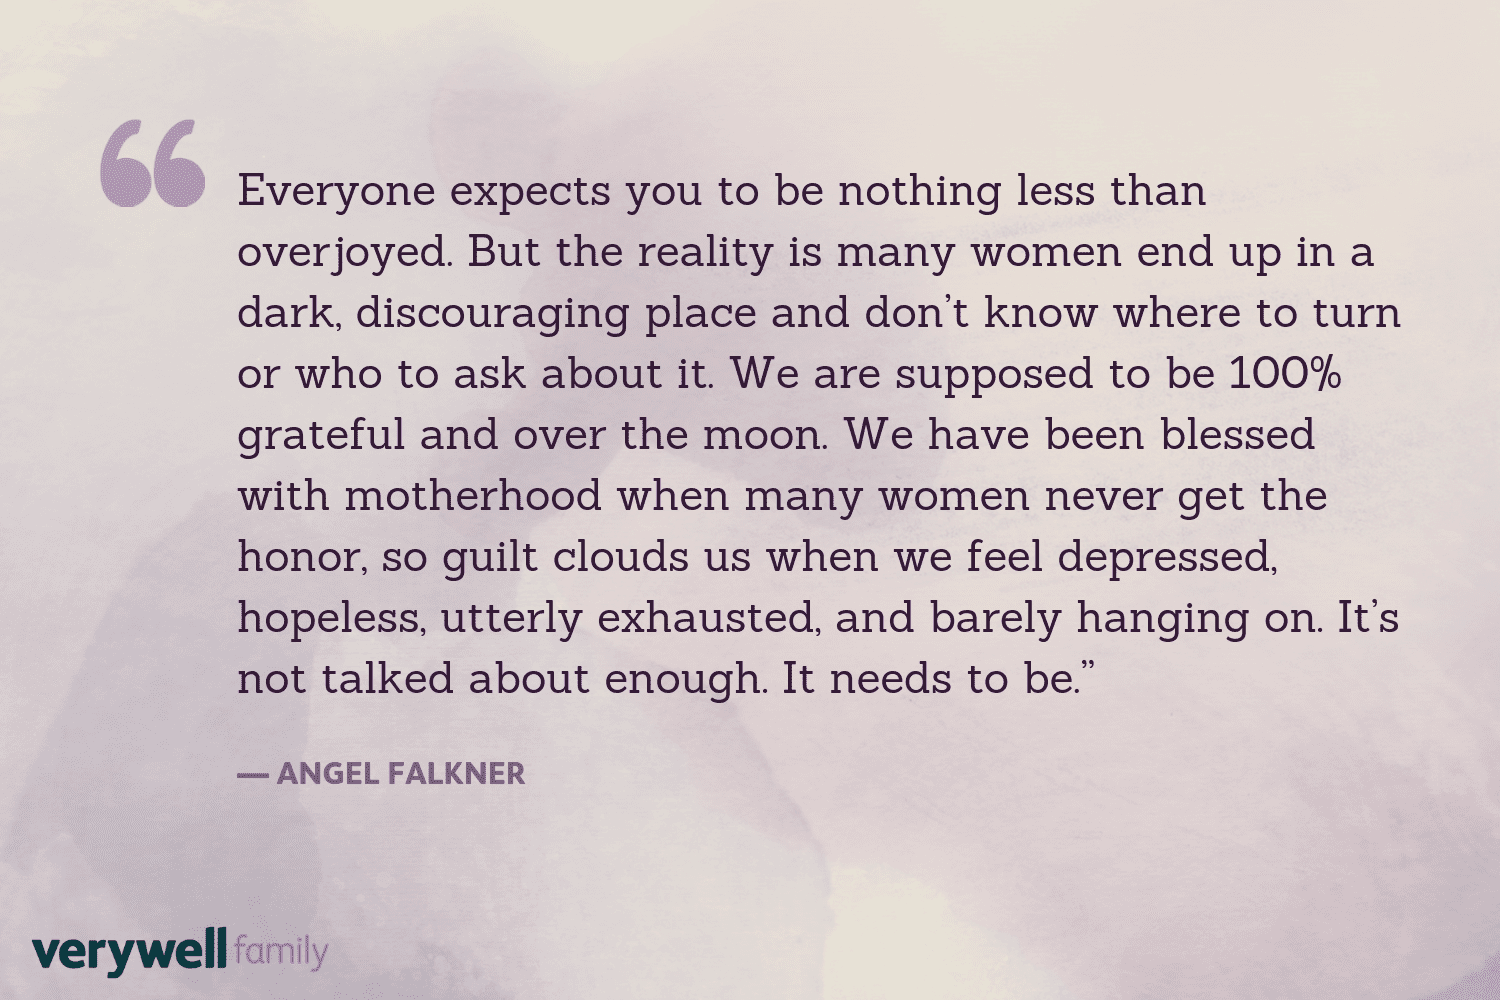 Verywell Family postpartum quote by Angel Falkner